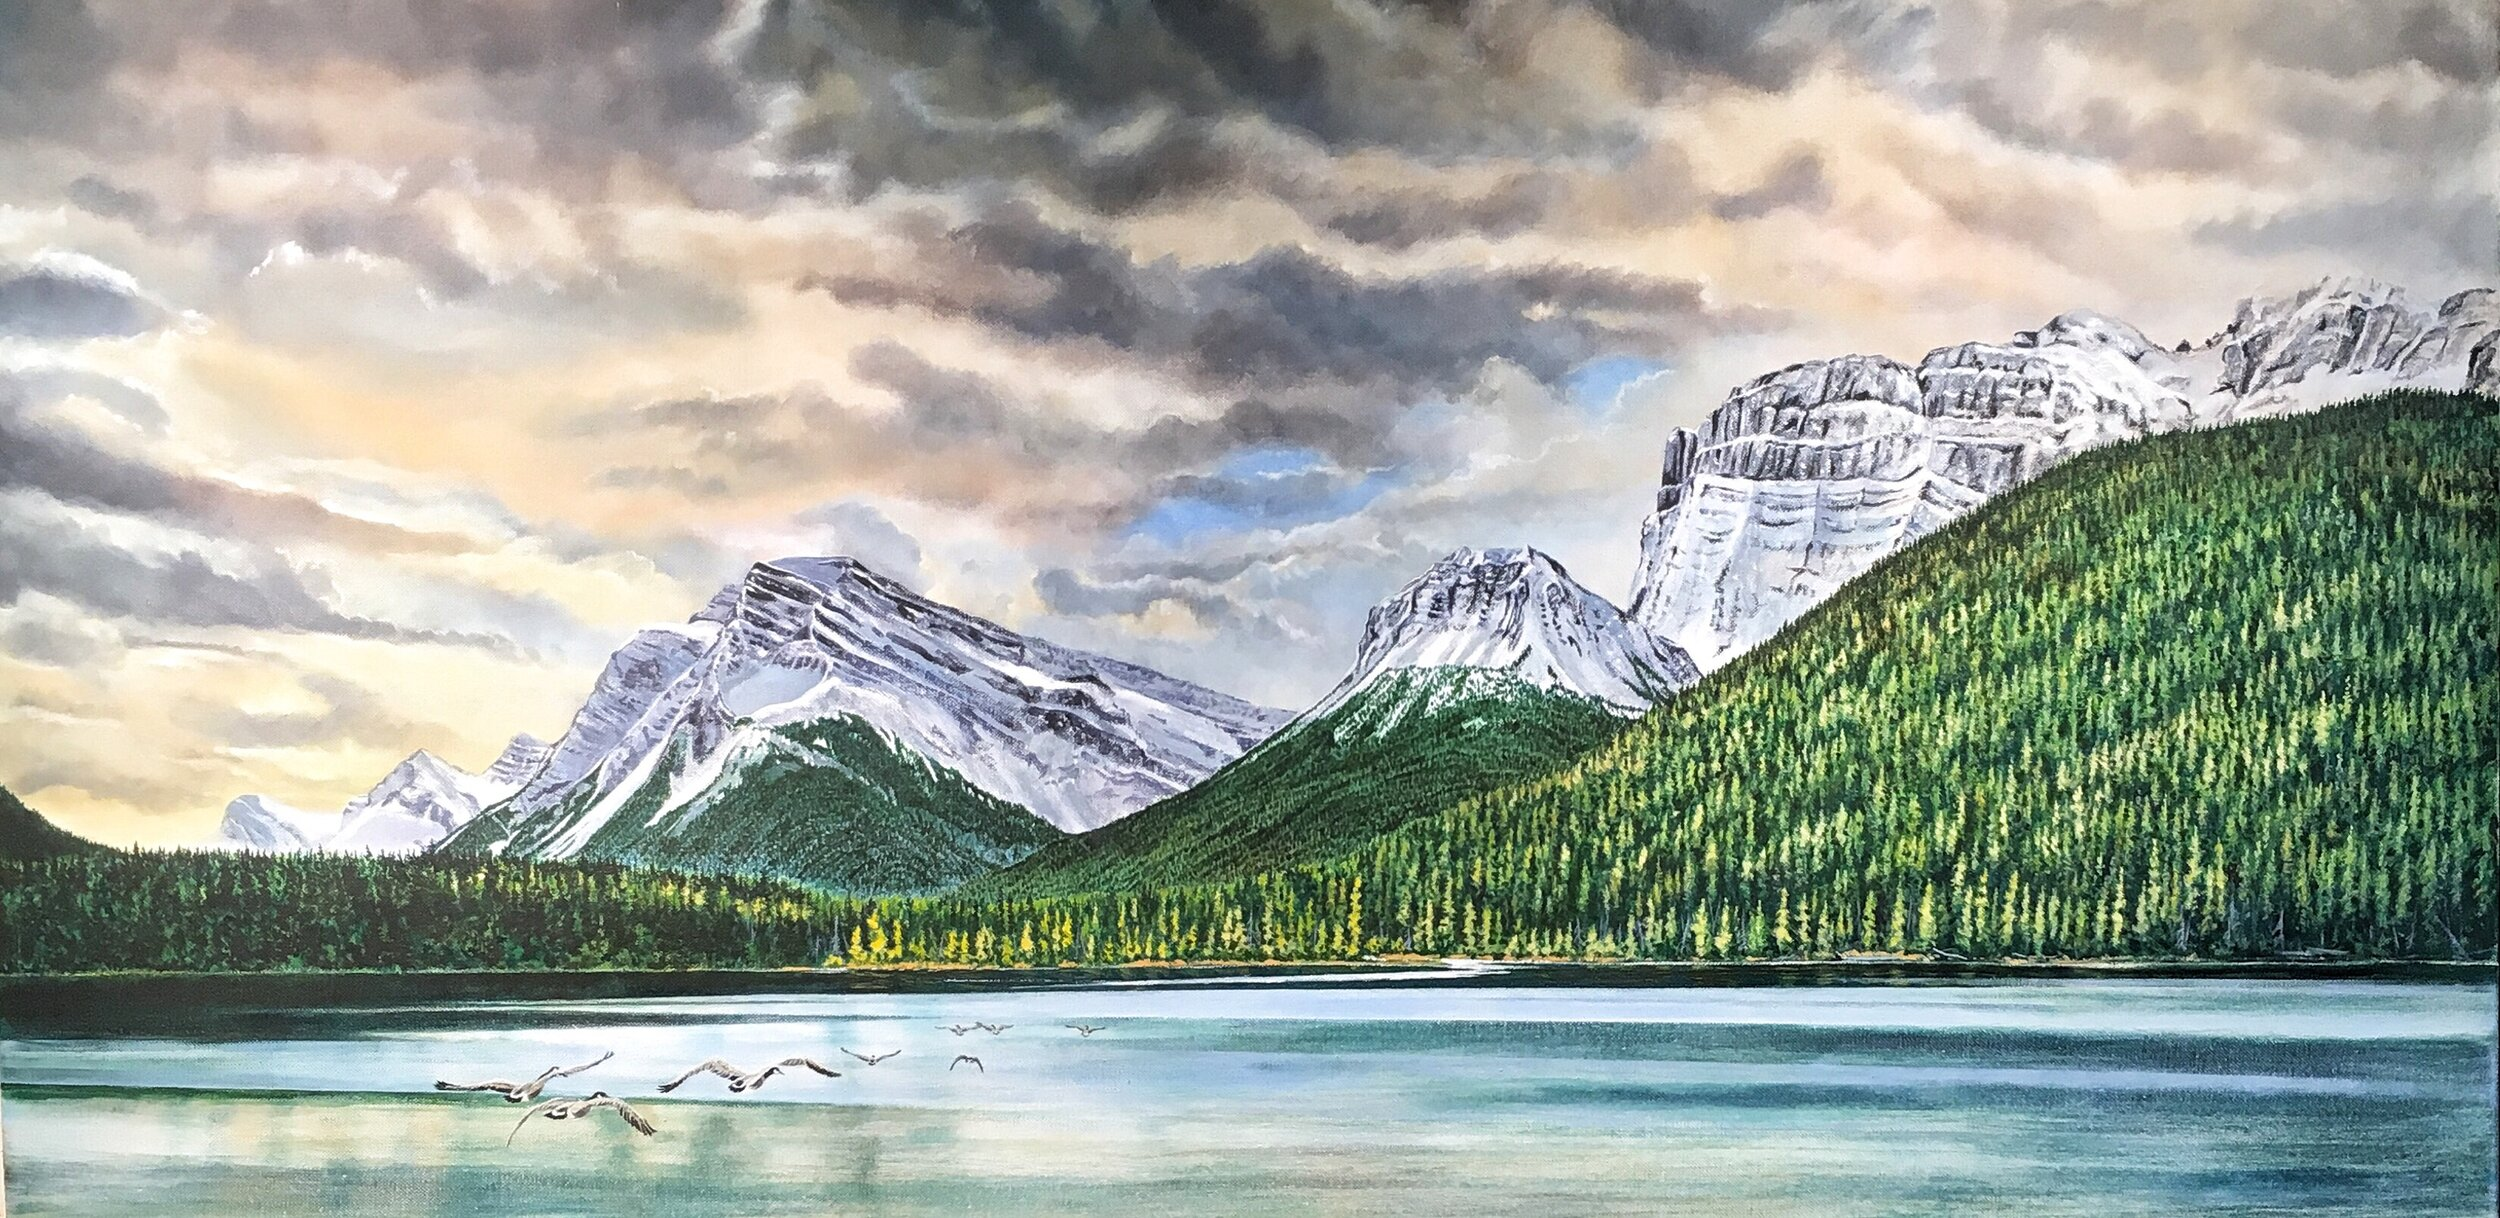 Chuck Burns,  Stopover - Waterfowl Lake,  2018, acrylic on canvas, 24 x 48 inches framed